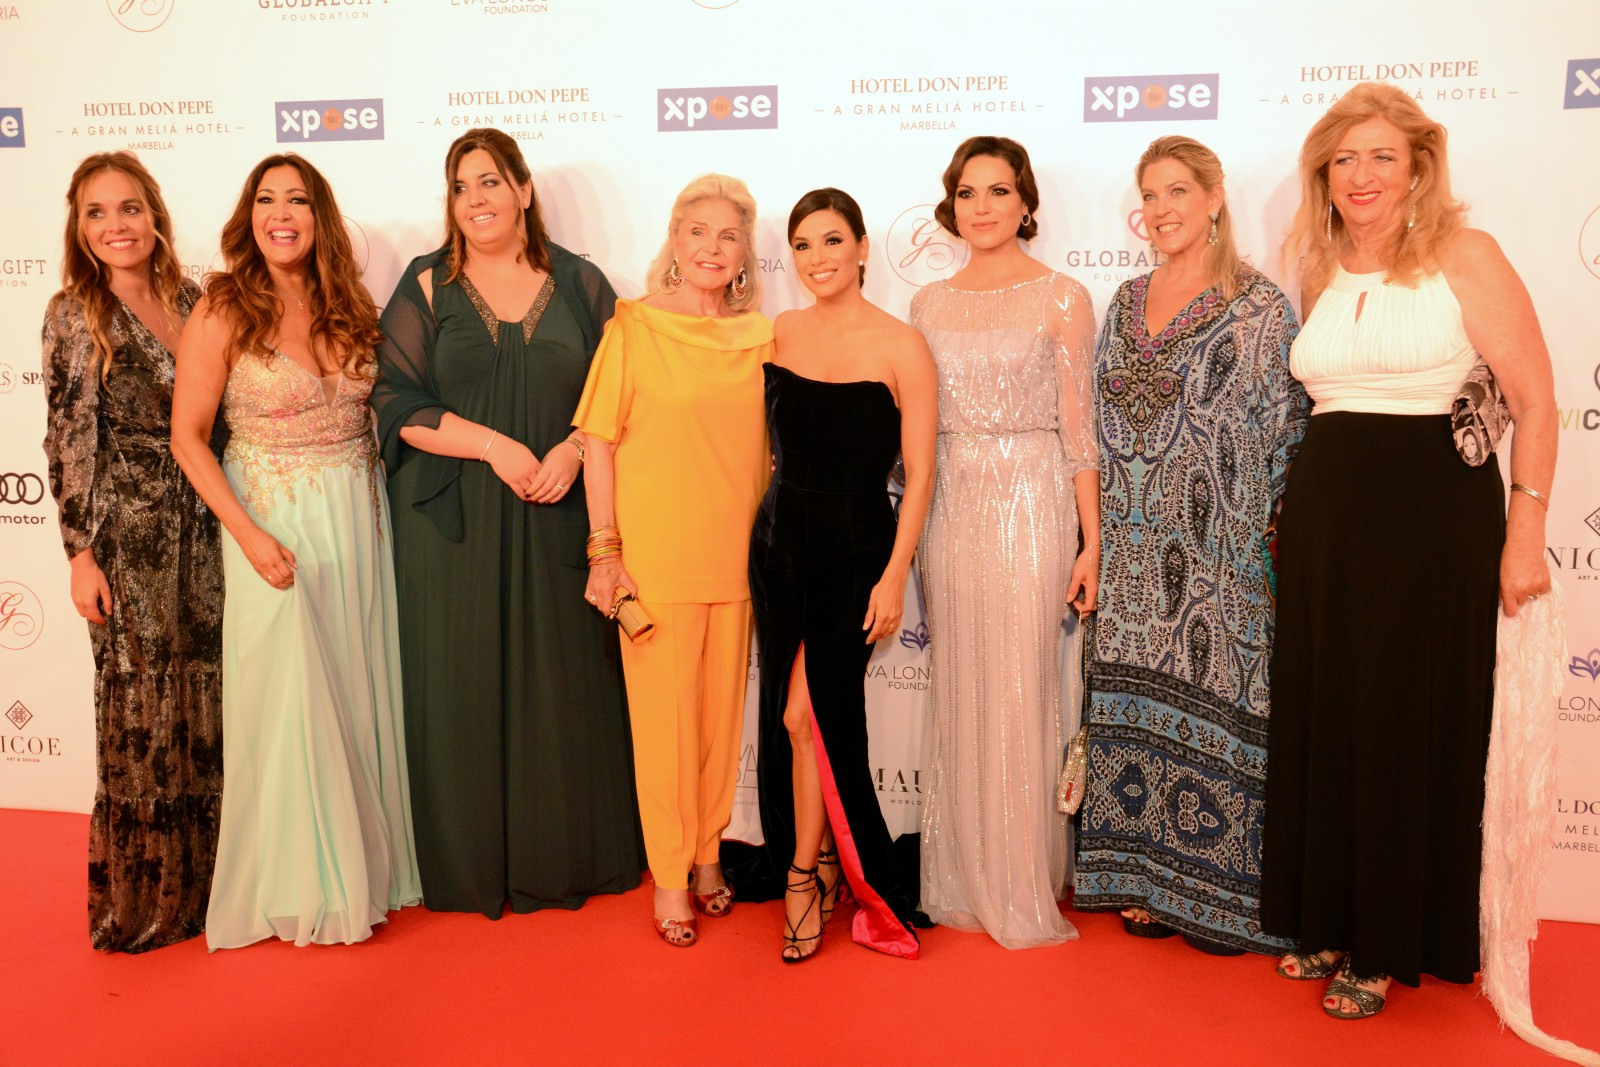 Luxury Spain colabora un año más en la Global Gift Gala de Marbella